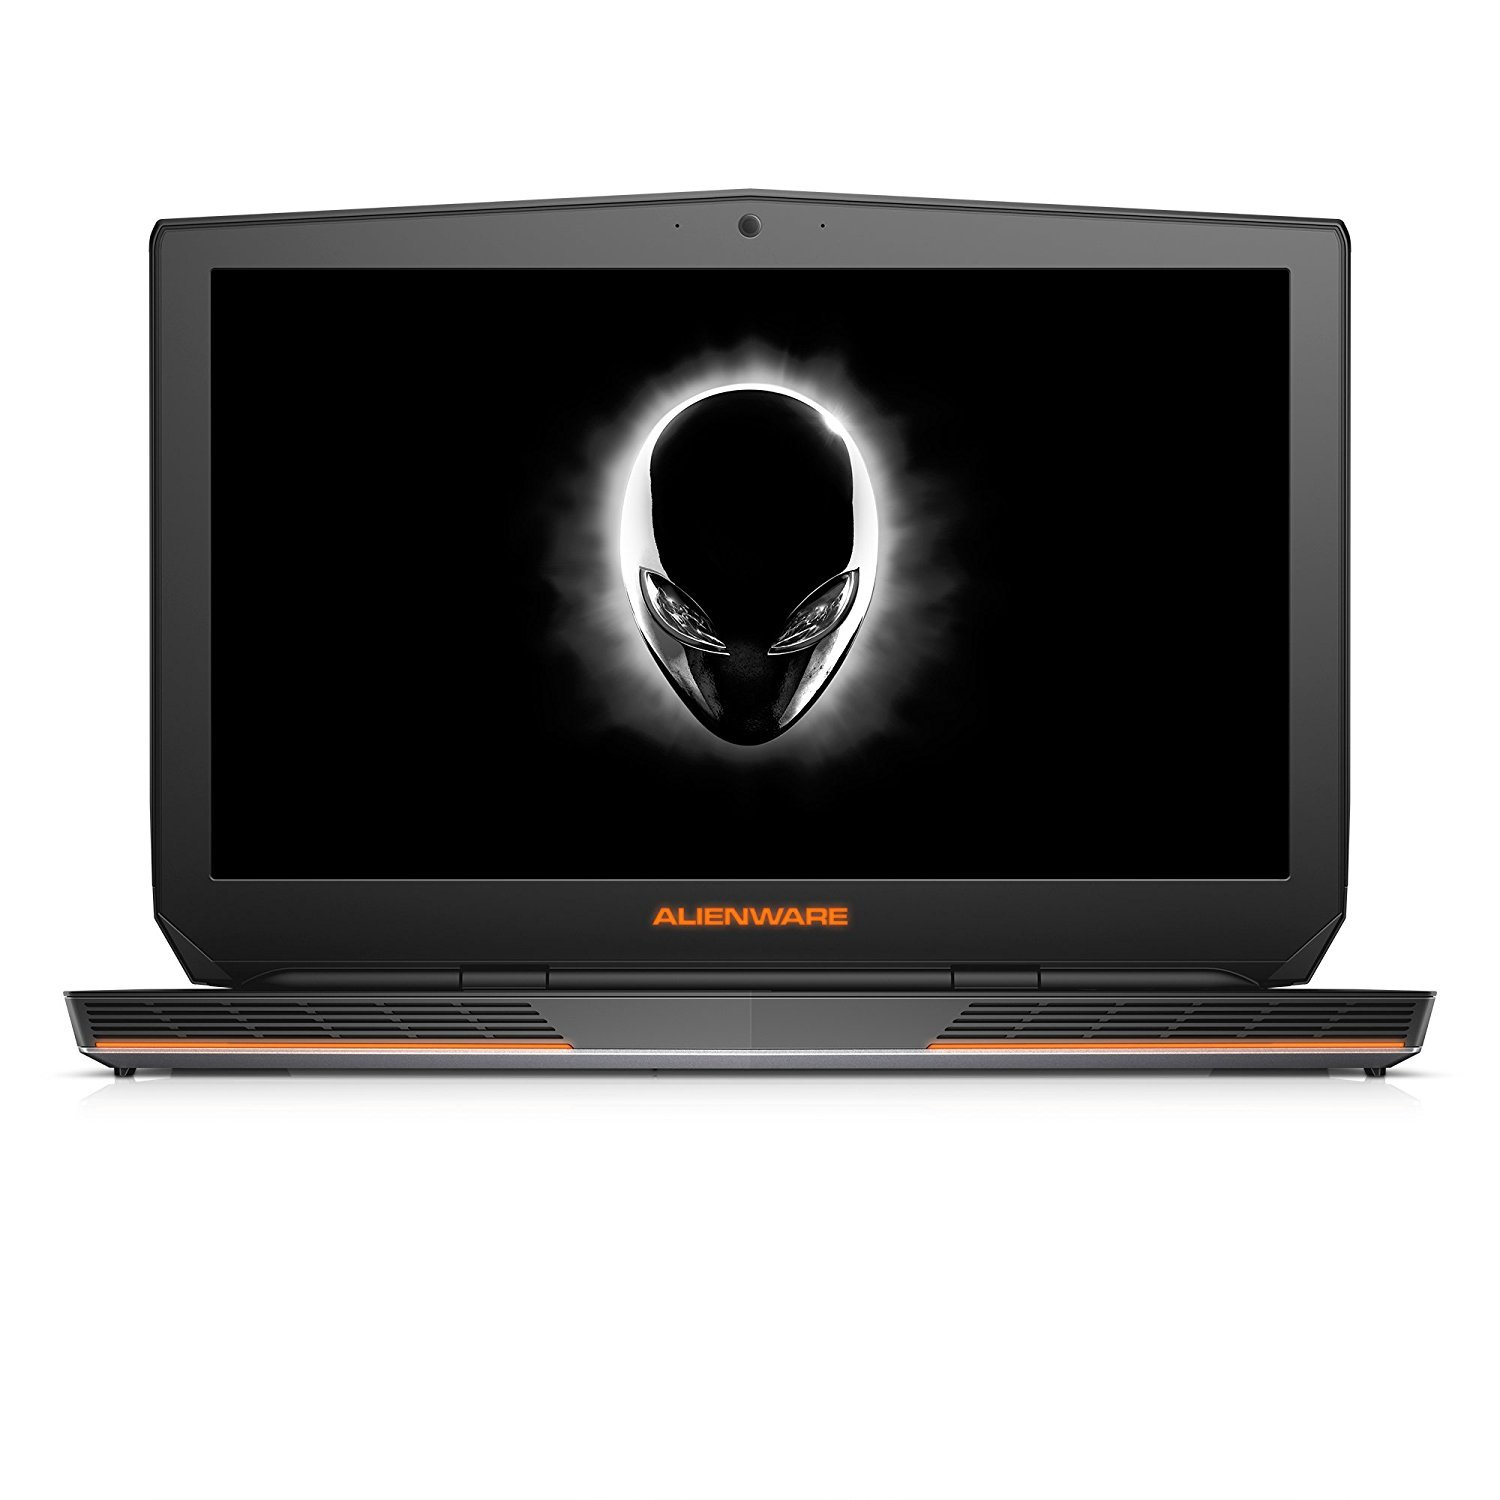 Refurbished Alienware AW17R3 17.3-Inch FHD Touch Screen Laptop (6th Generation Intel Core i7 4980HQ, 16 GB RAM, 256GB M.2 SSD 1 TB HDD,NVIDIA GeForce GTX 980M